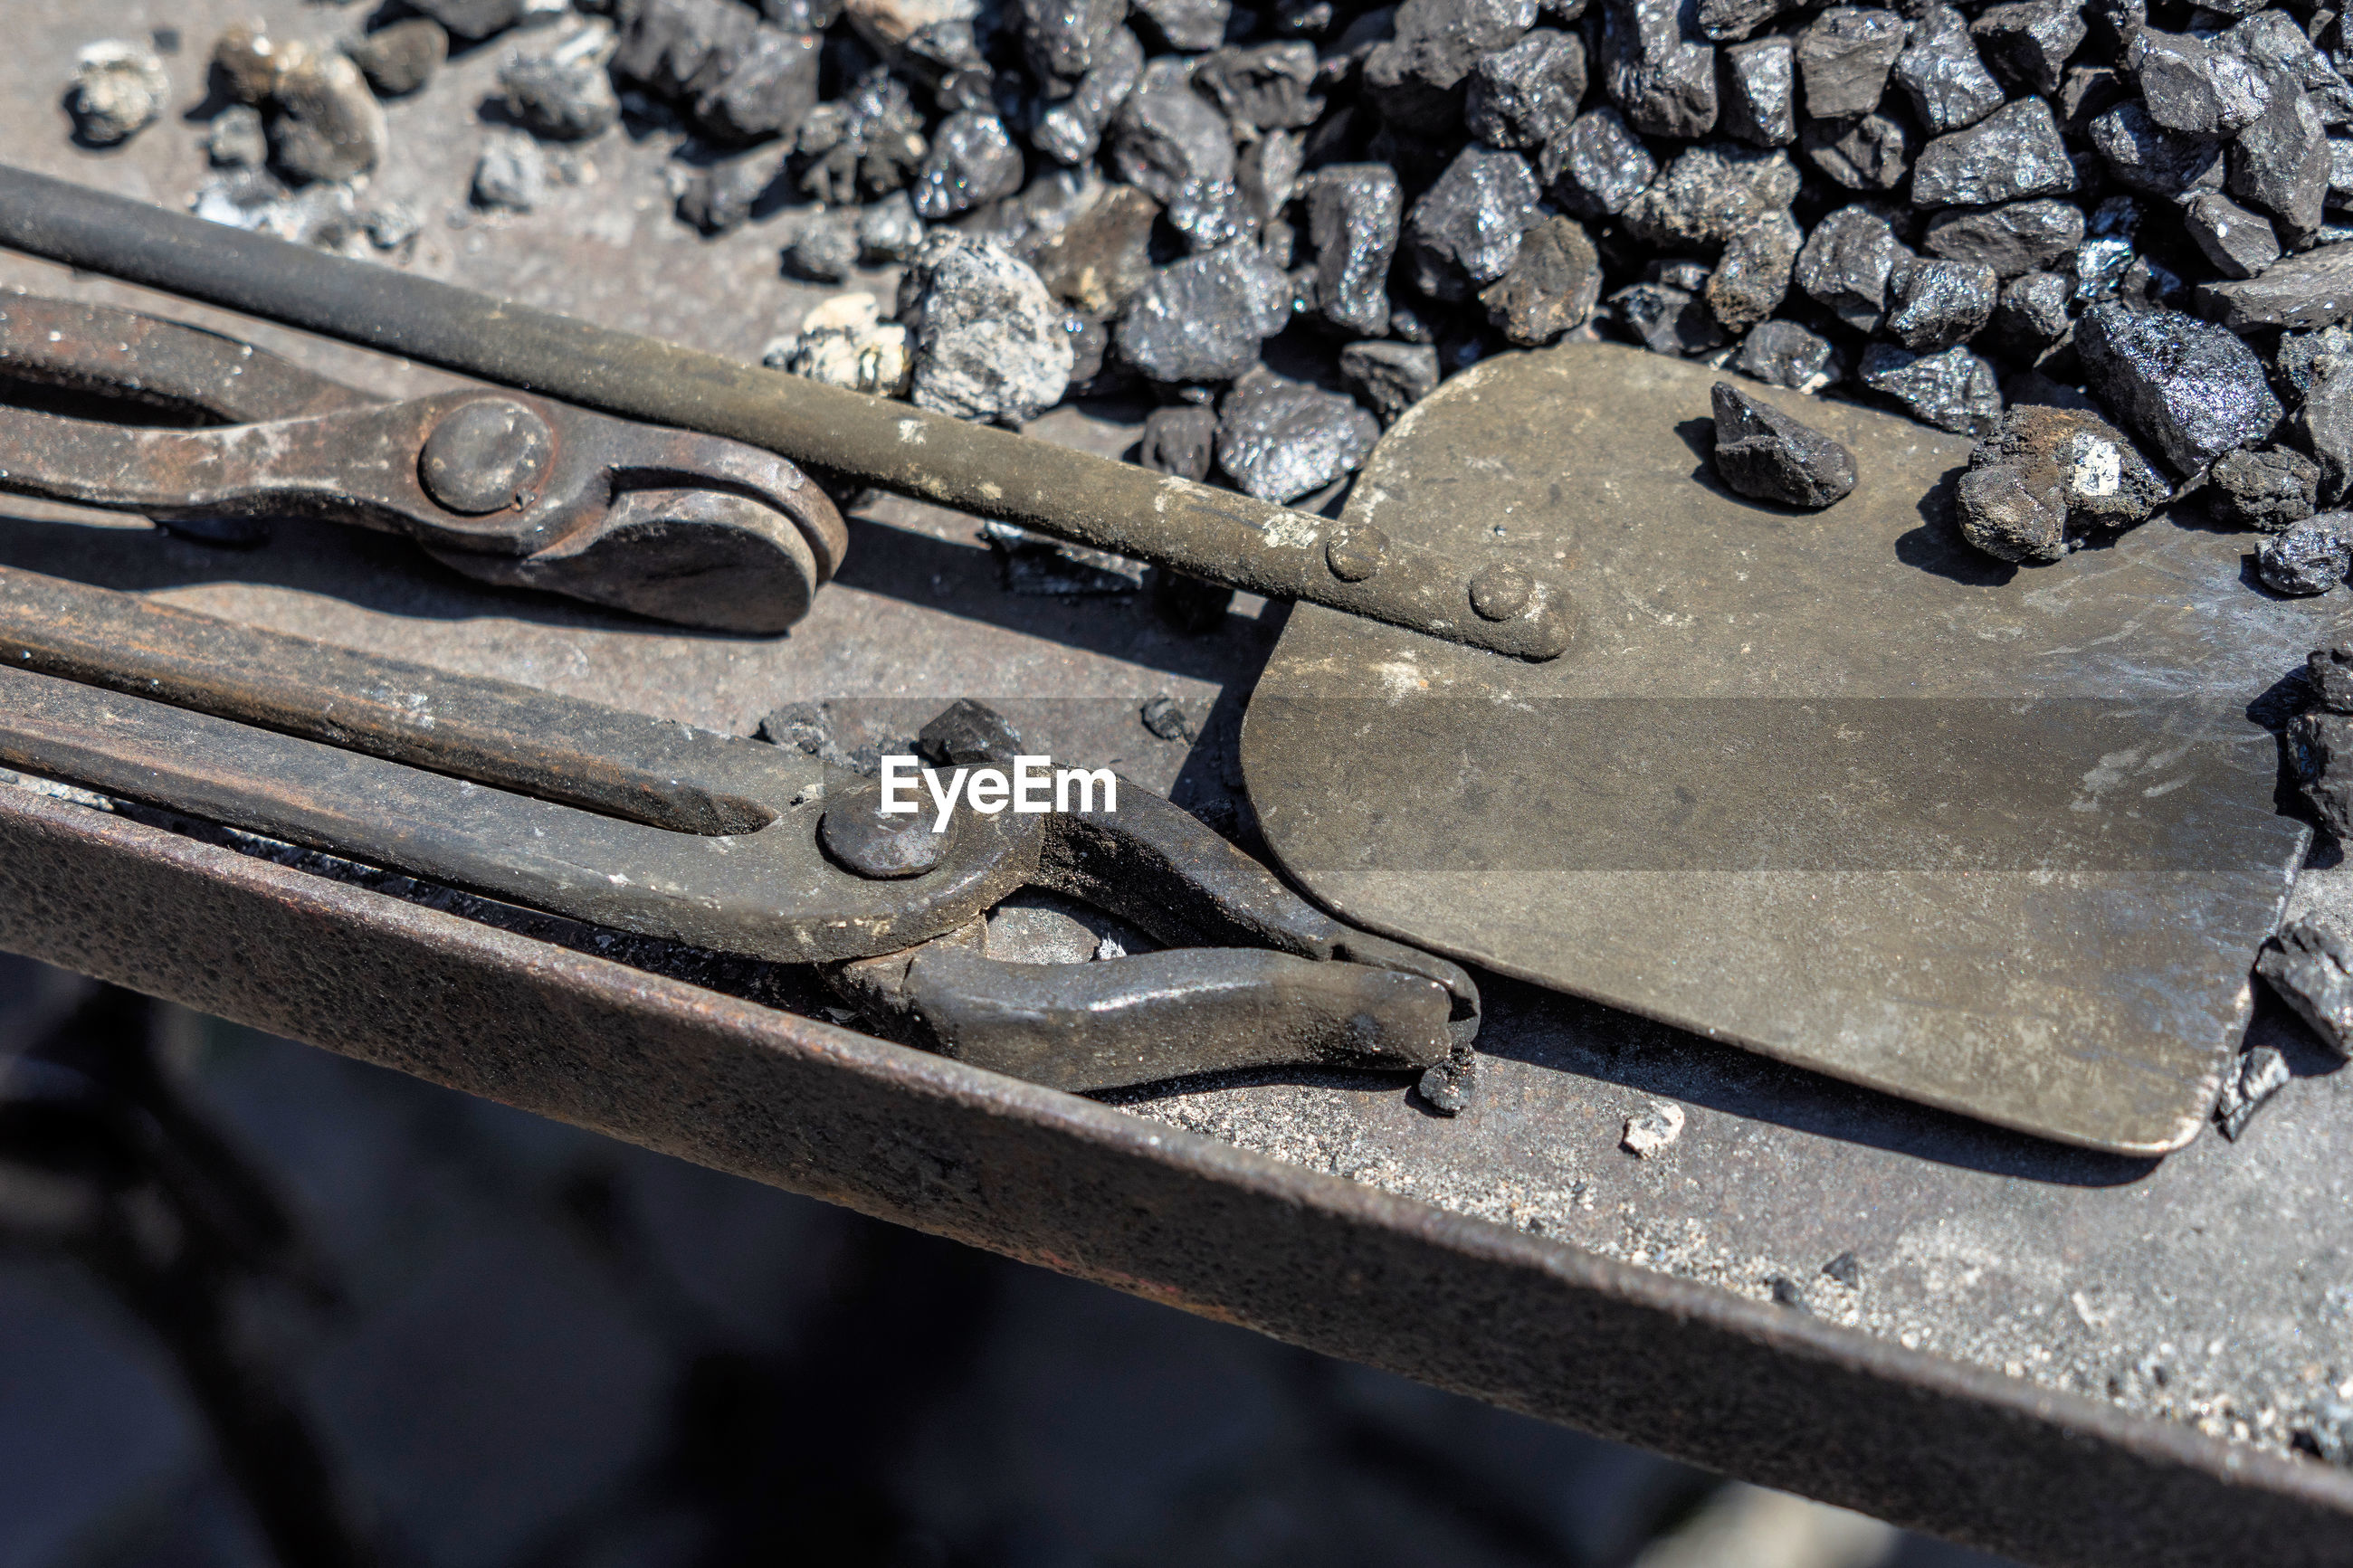 High angle view of metal work tools and stones